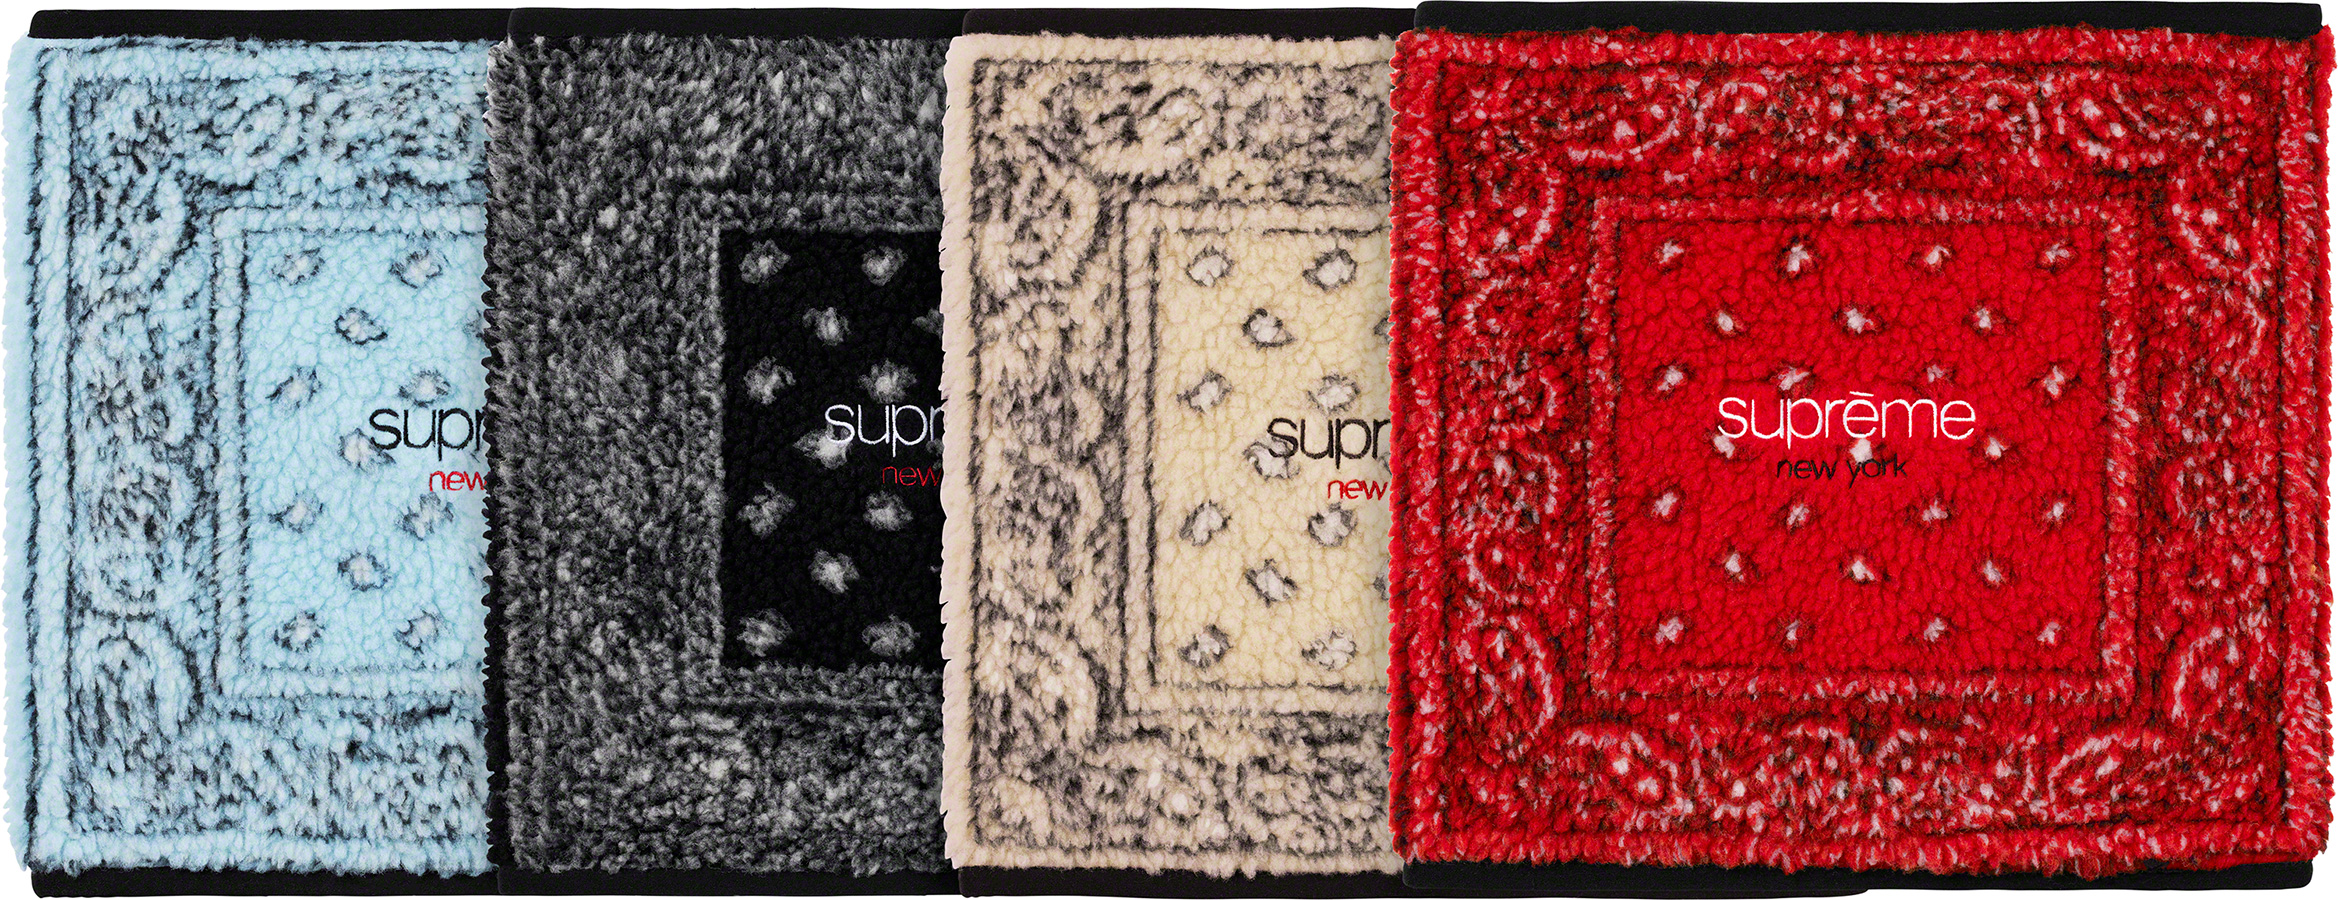 supreme-19aw-19fw-fall-winter-bandana-fleece-neck-gaiter